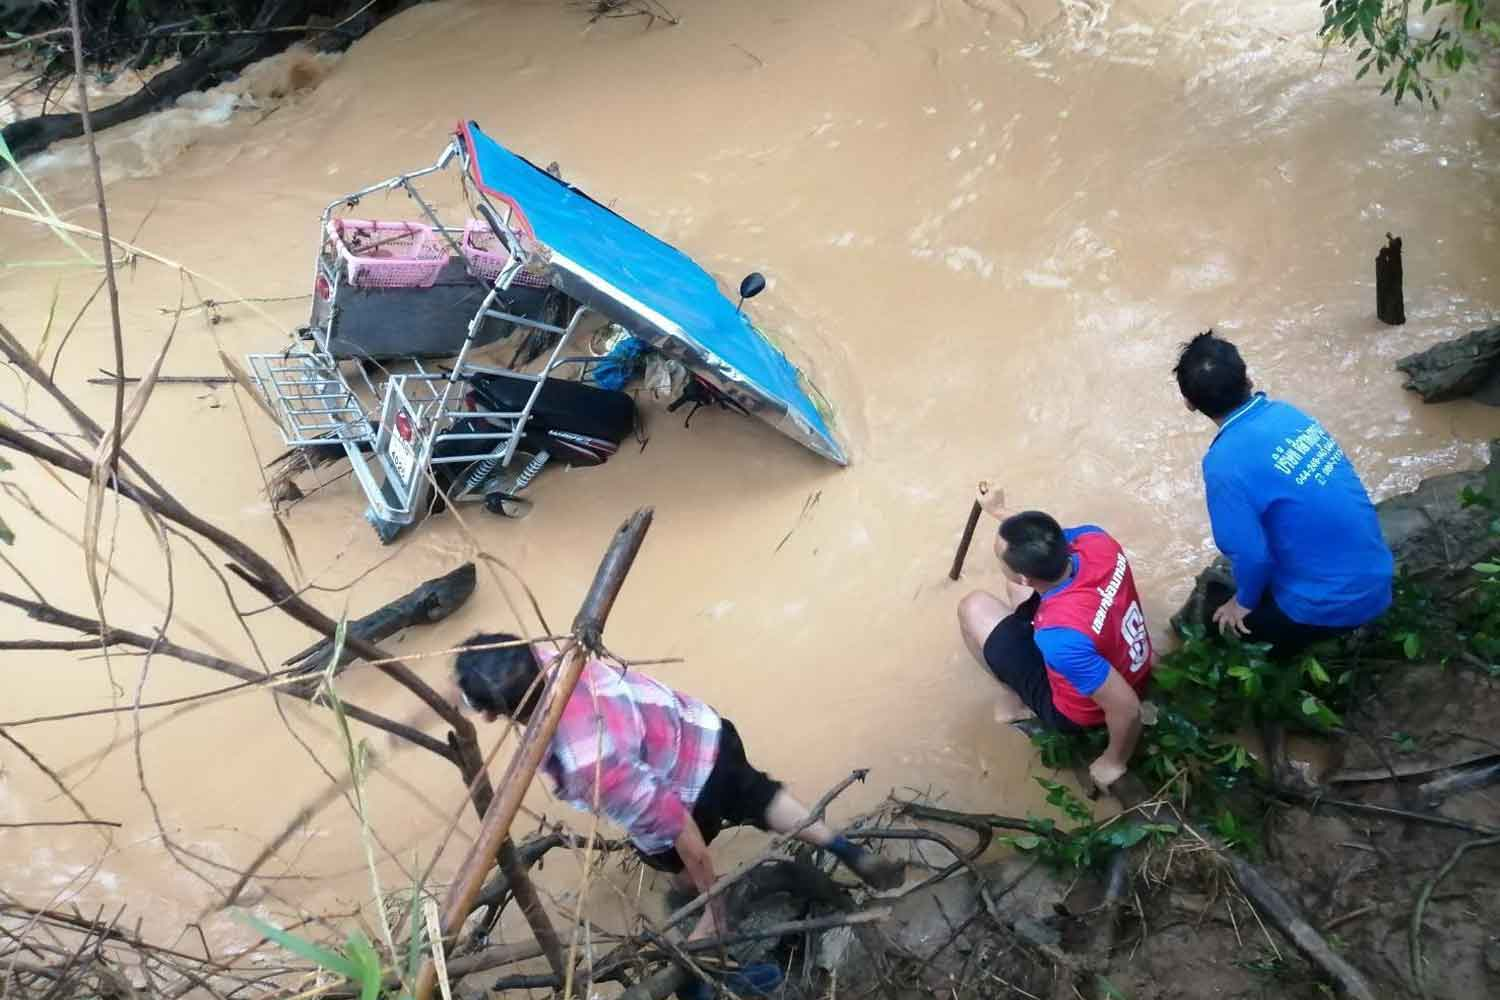 A motorcycle sidecar is found in a canal near a village in Nakhon Ratchasima's Wang Nam Khieo district. The motorcycle slipped into the canal early on Tuesday and the driver, a female villager, was swept away by a strong current and drowned. (Photo: Prasit Tangprasert)